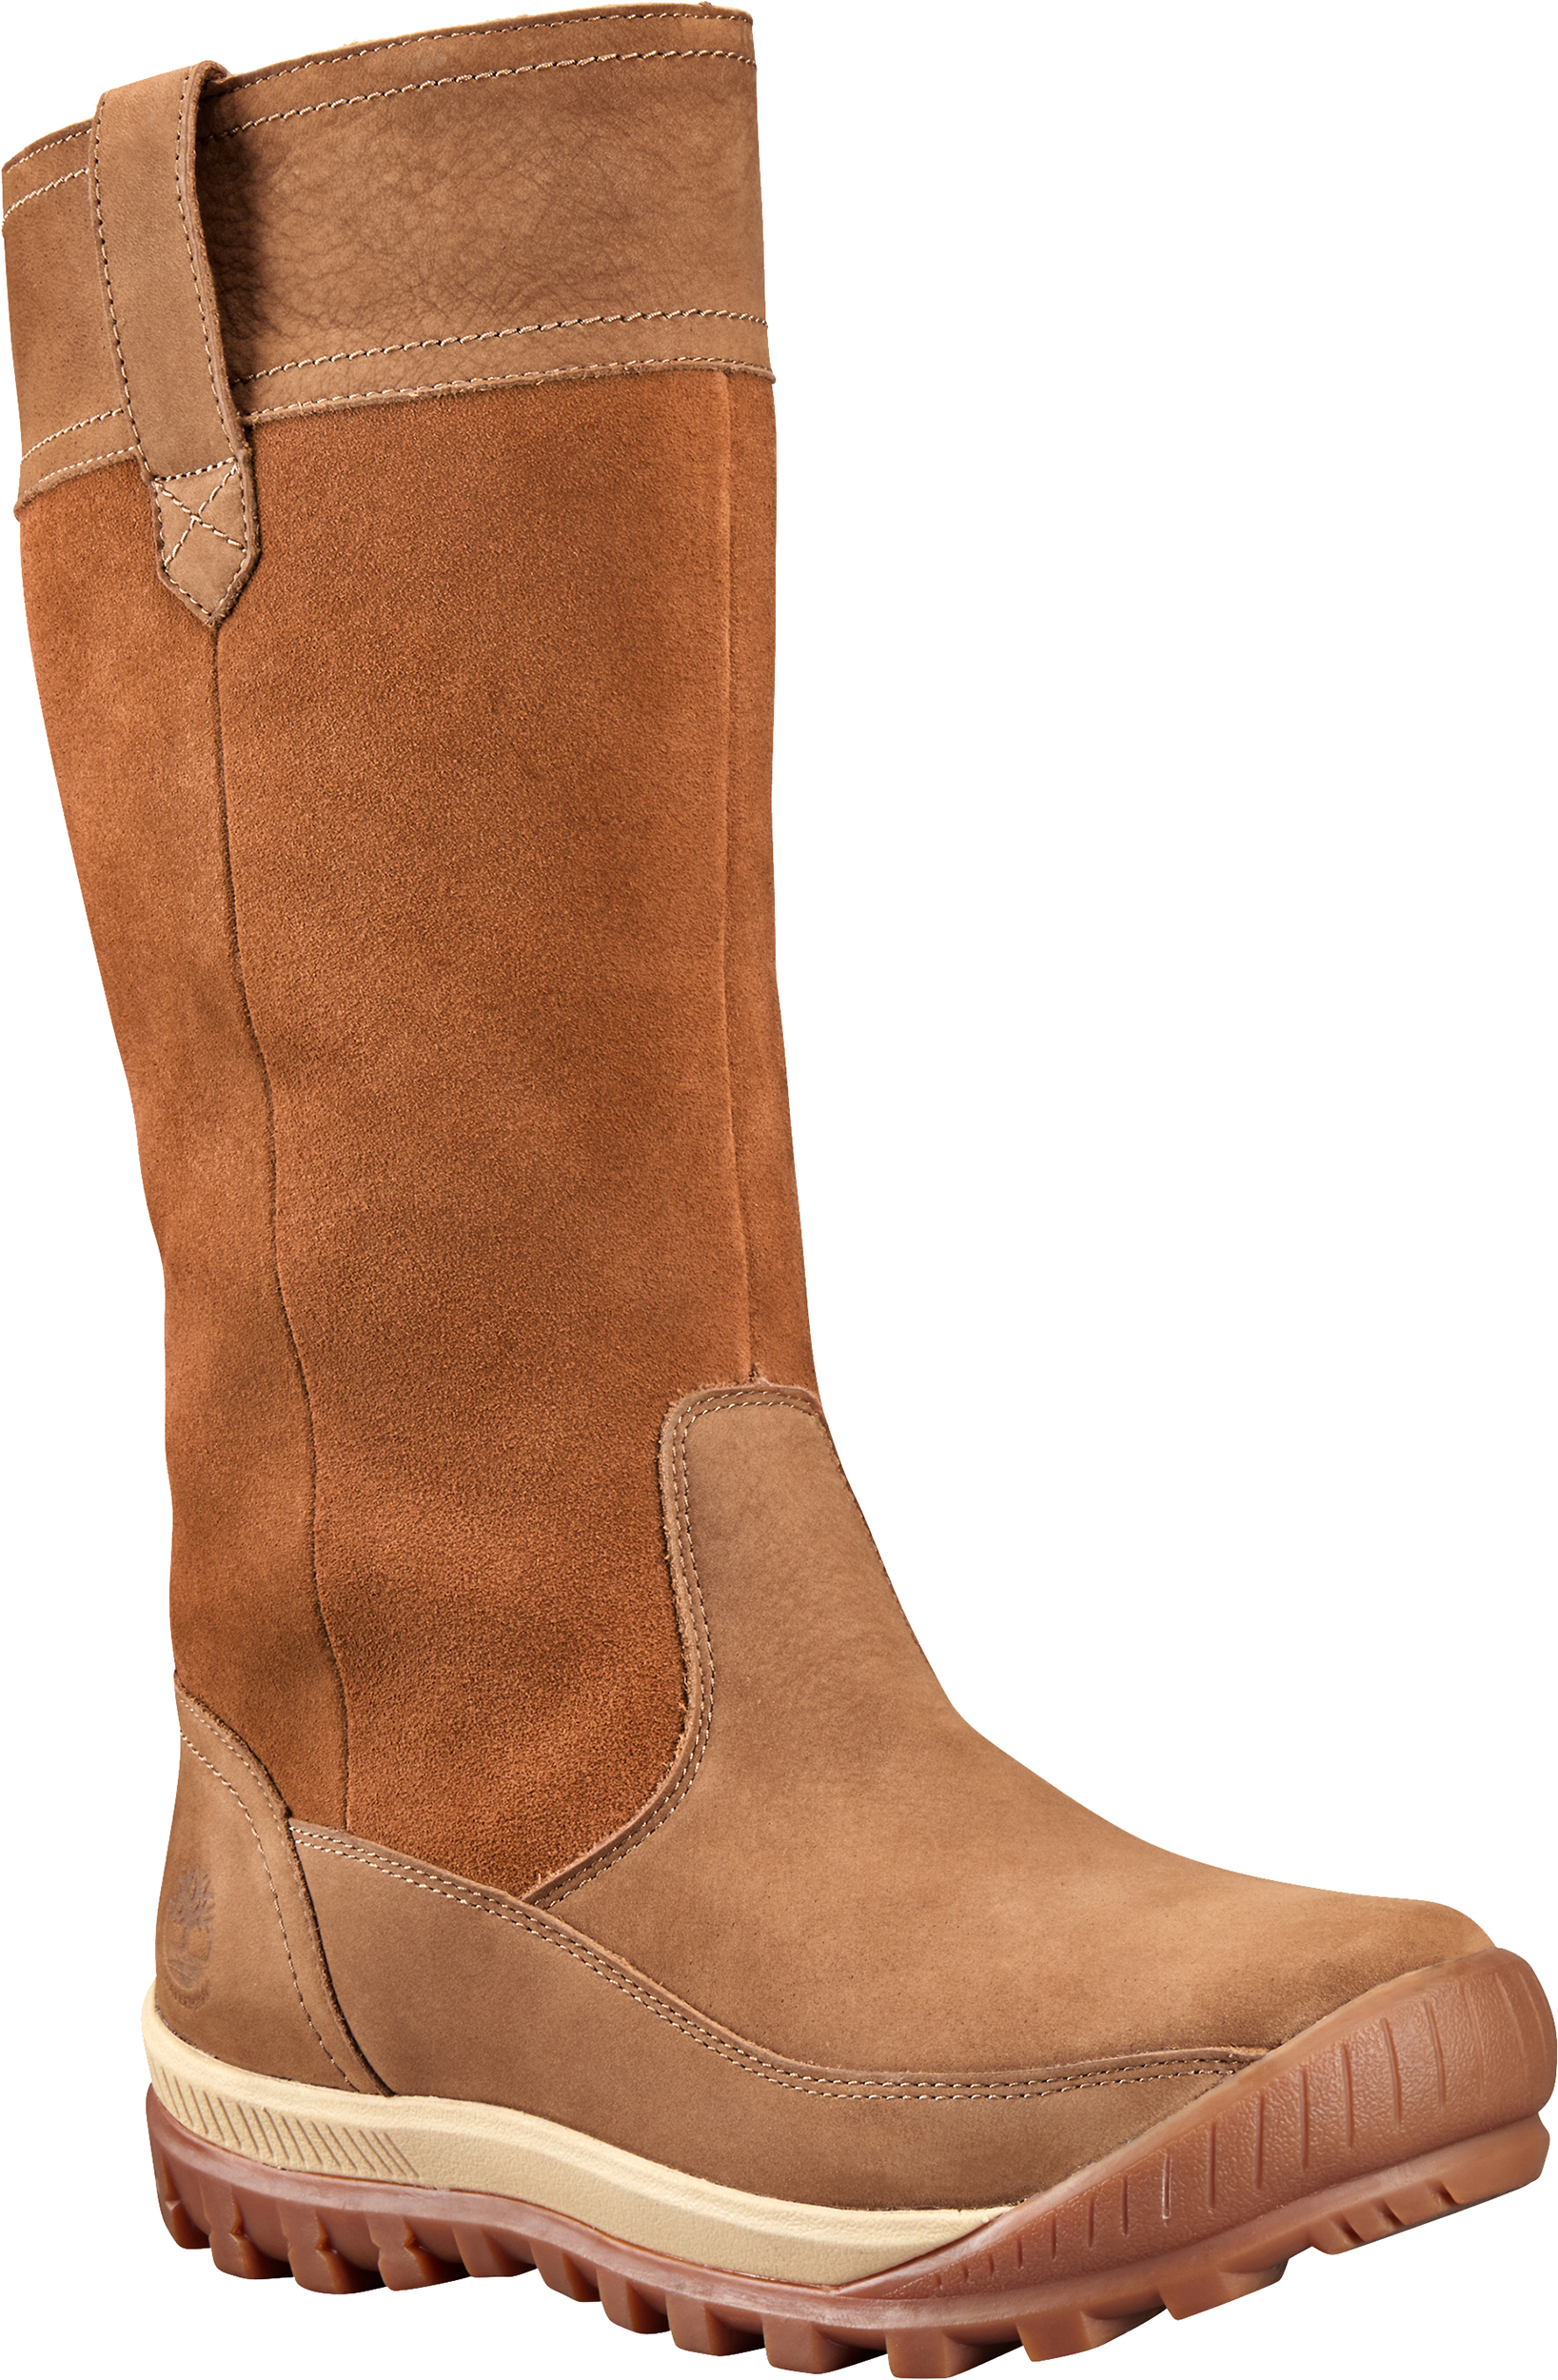 Timberland Mt Hayes Waterproof Pull-On